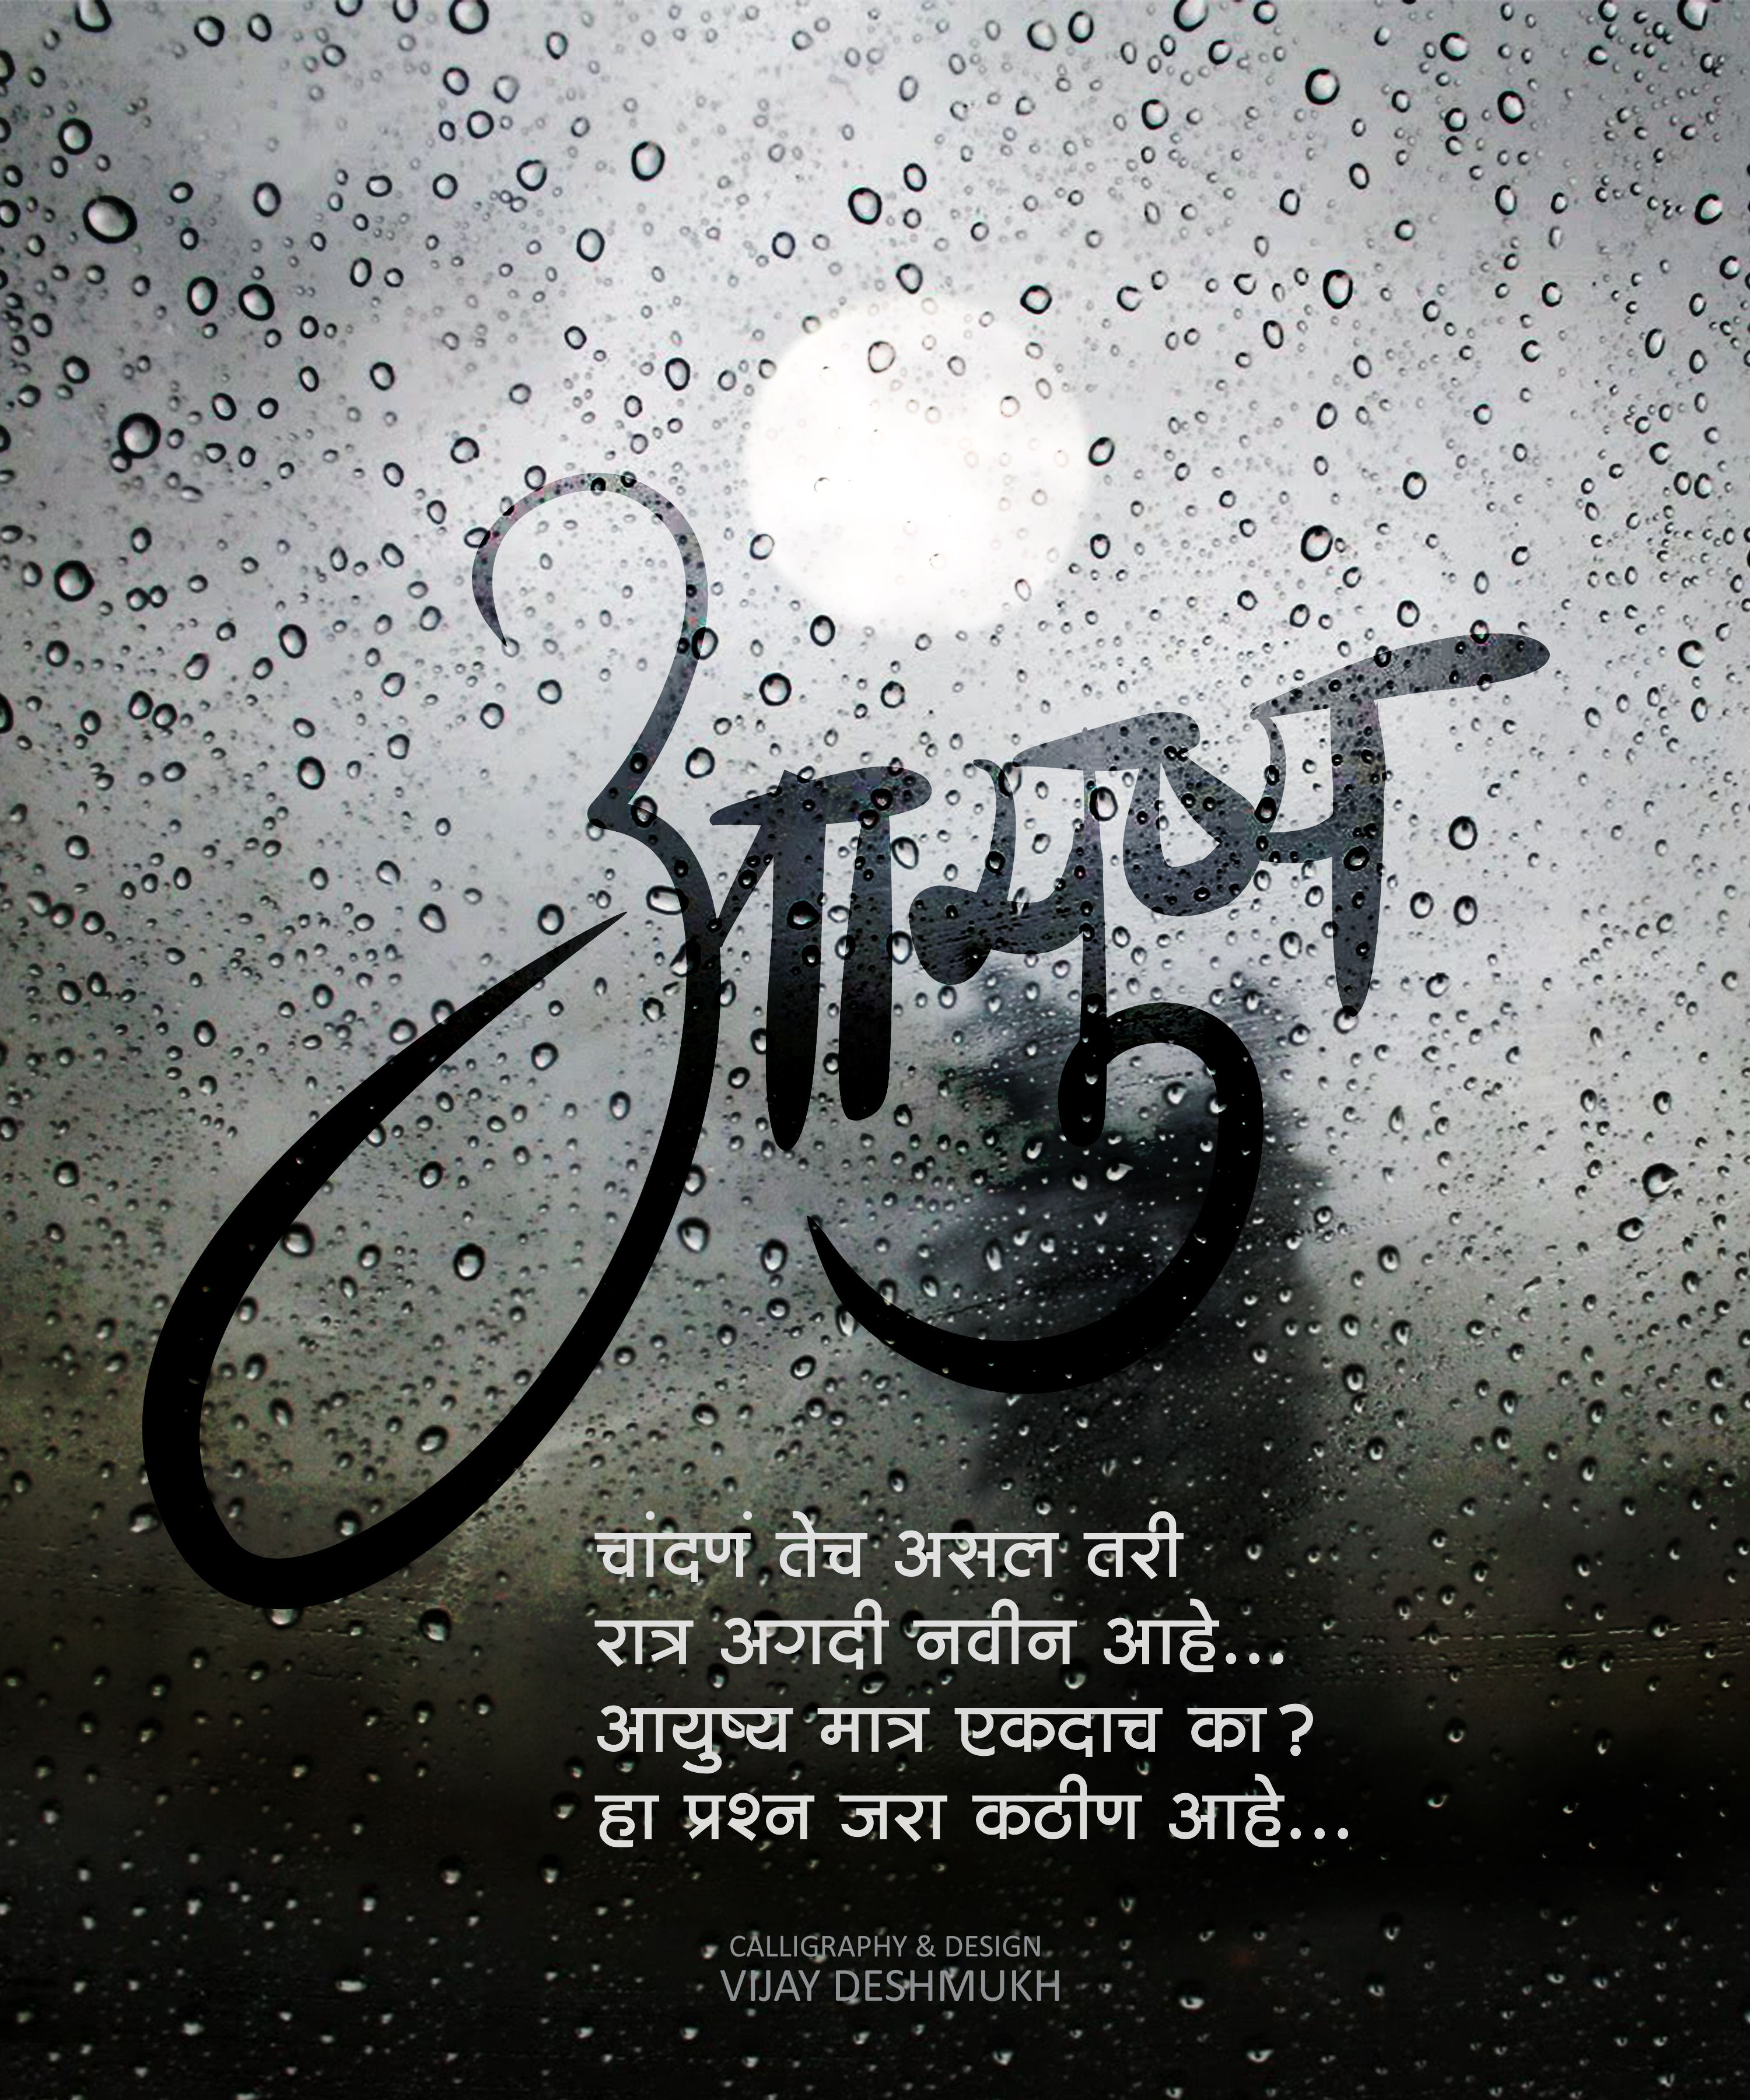 aayush calligraphy vijay deshmukh Birthday quotes for me